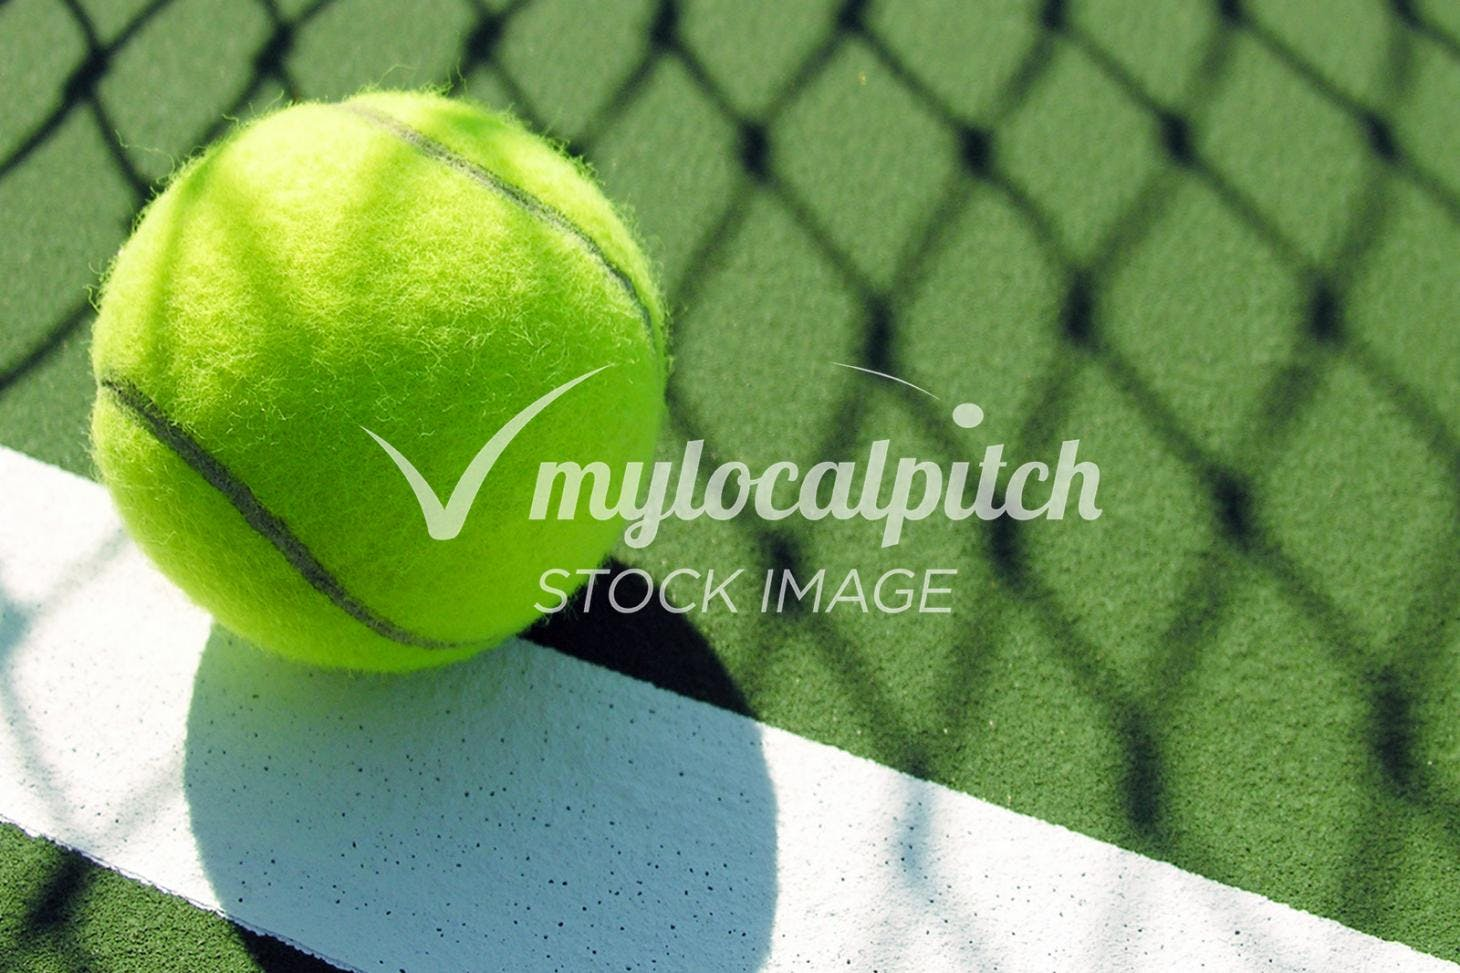 Virgin Active Fulham Outdoor | Hard (macadam) tennis court